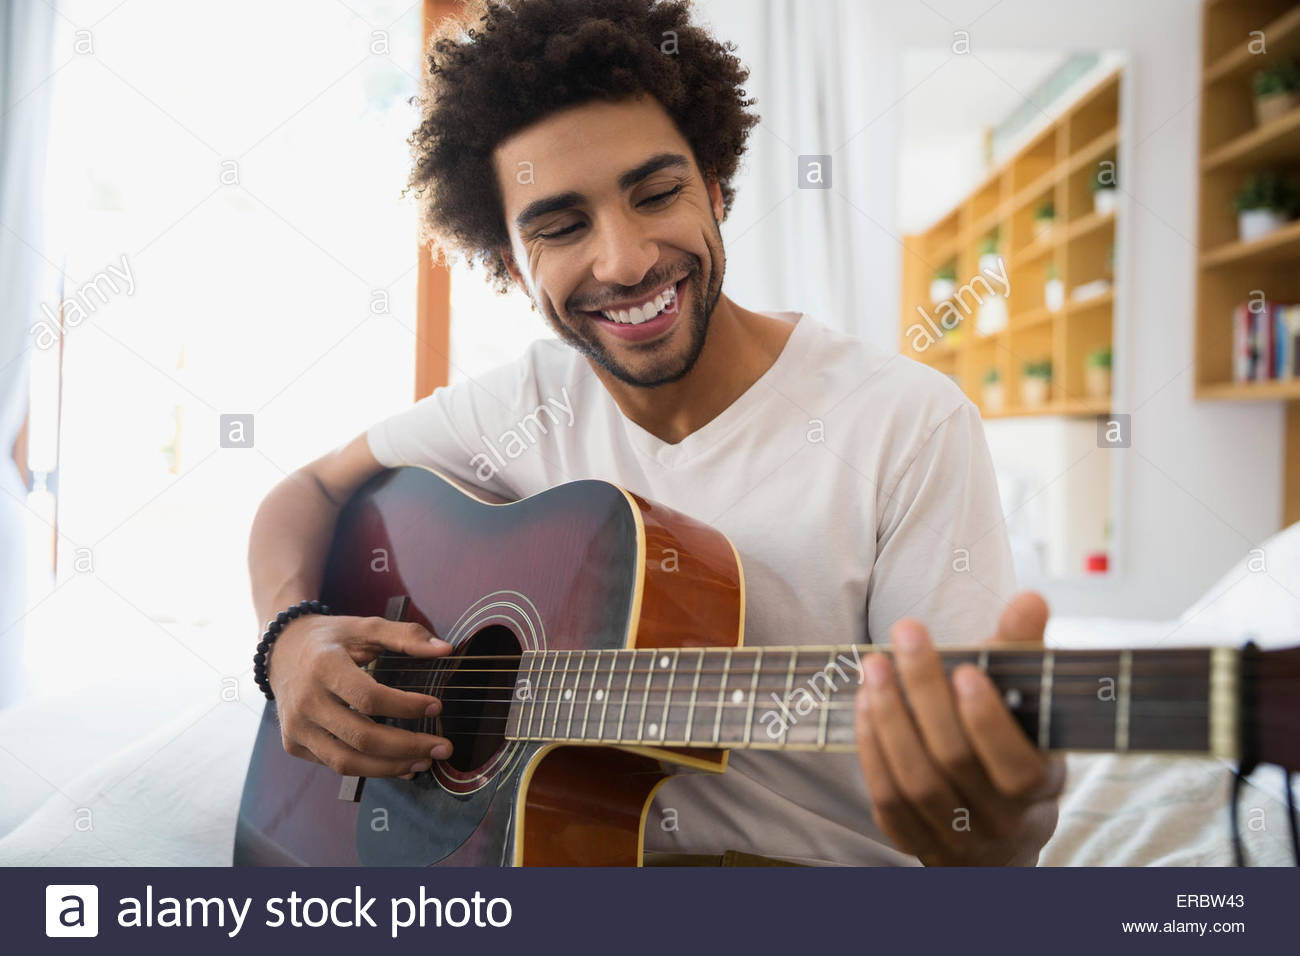 Smiling man playing guitar in bedroom - Stock Image